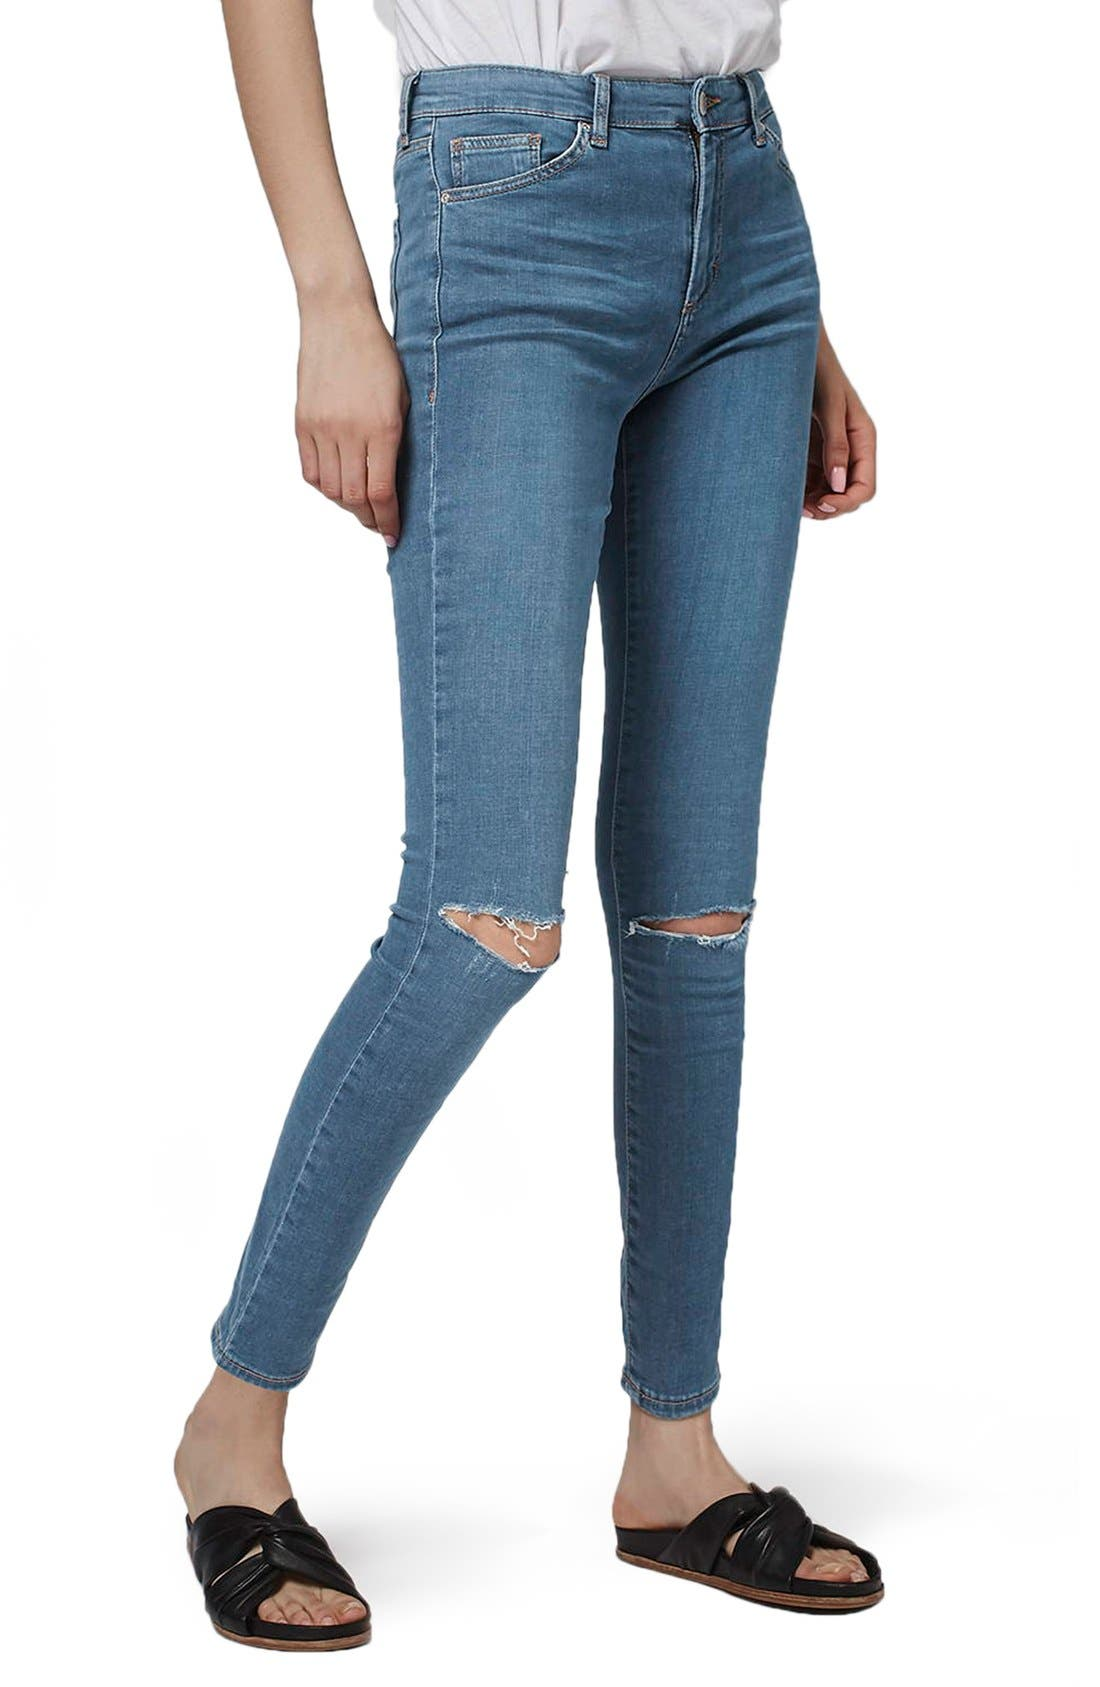 Alternate Image 1 Selected - Topshop Moto 'Leigh' Ripped Skinny Jeans